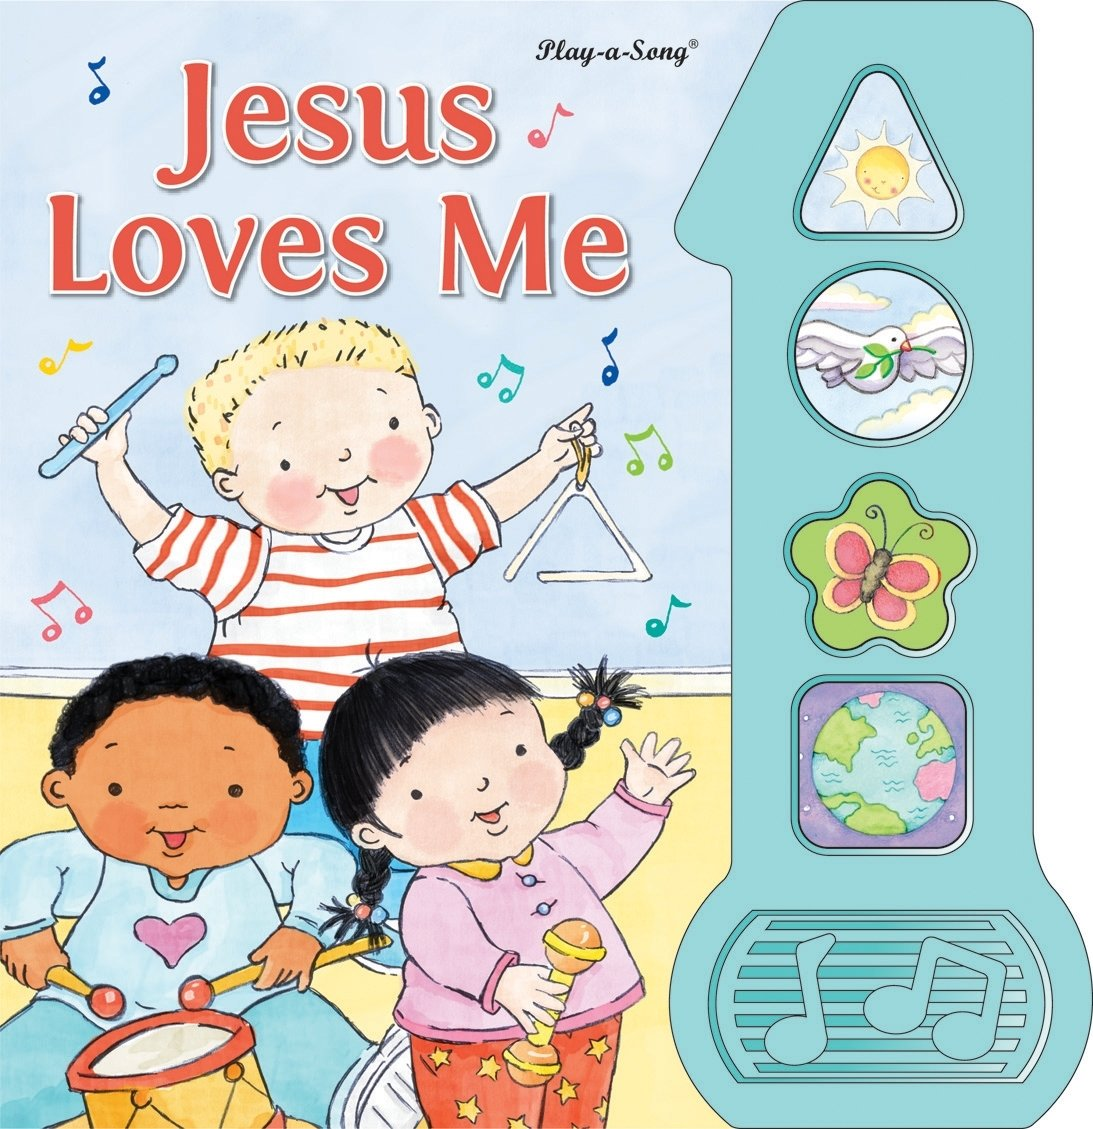 Jesus Loves Me Play-a-Song Book: 9781450808736: Amazon com: Books